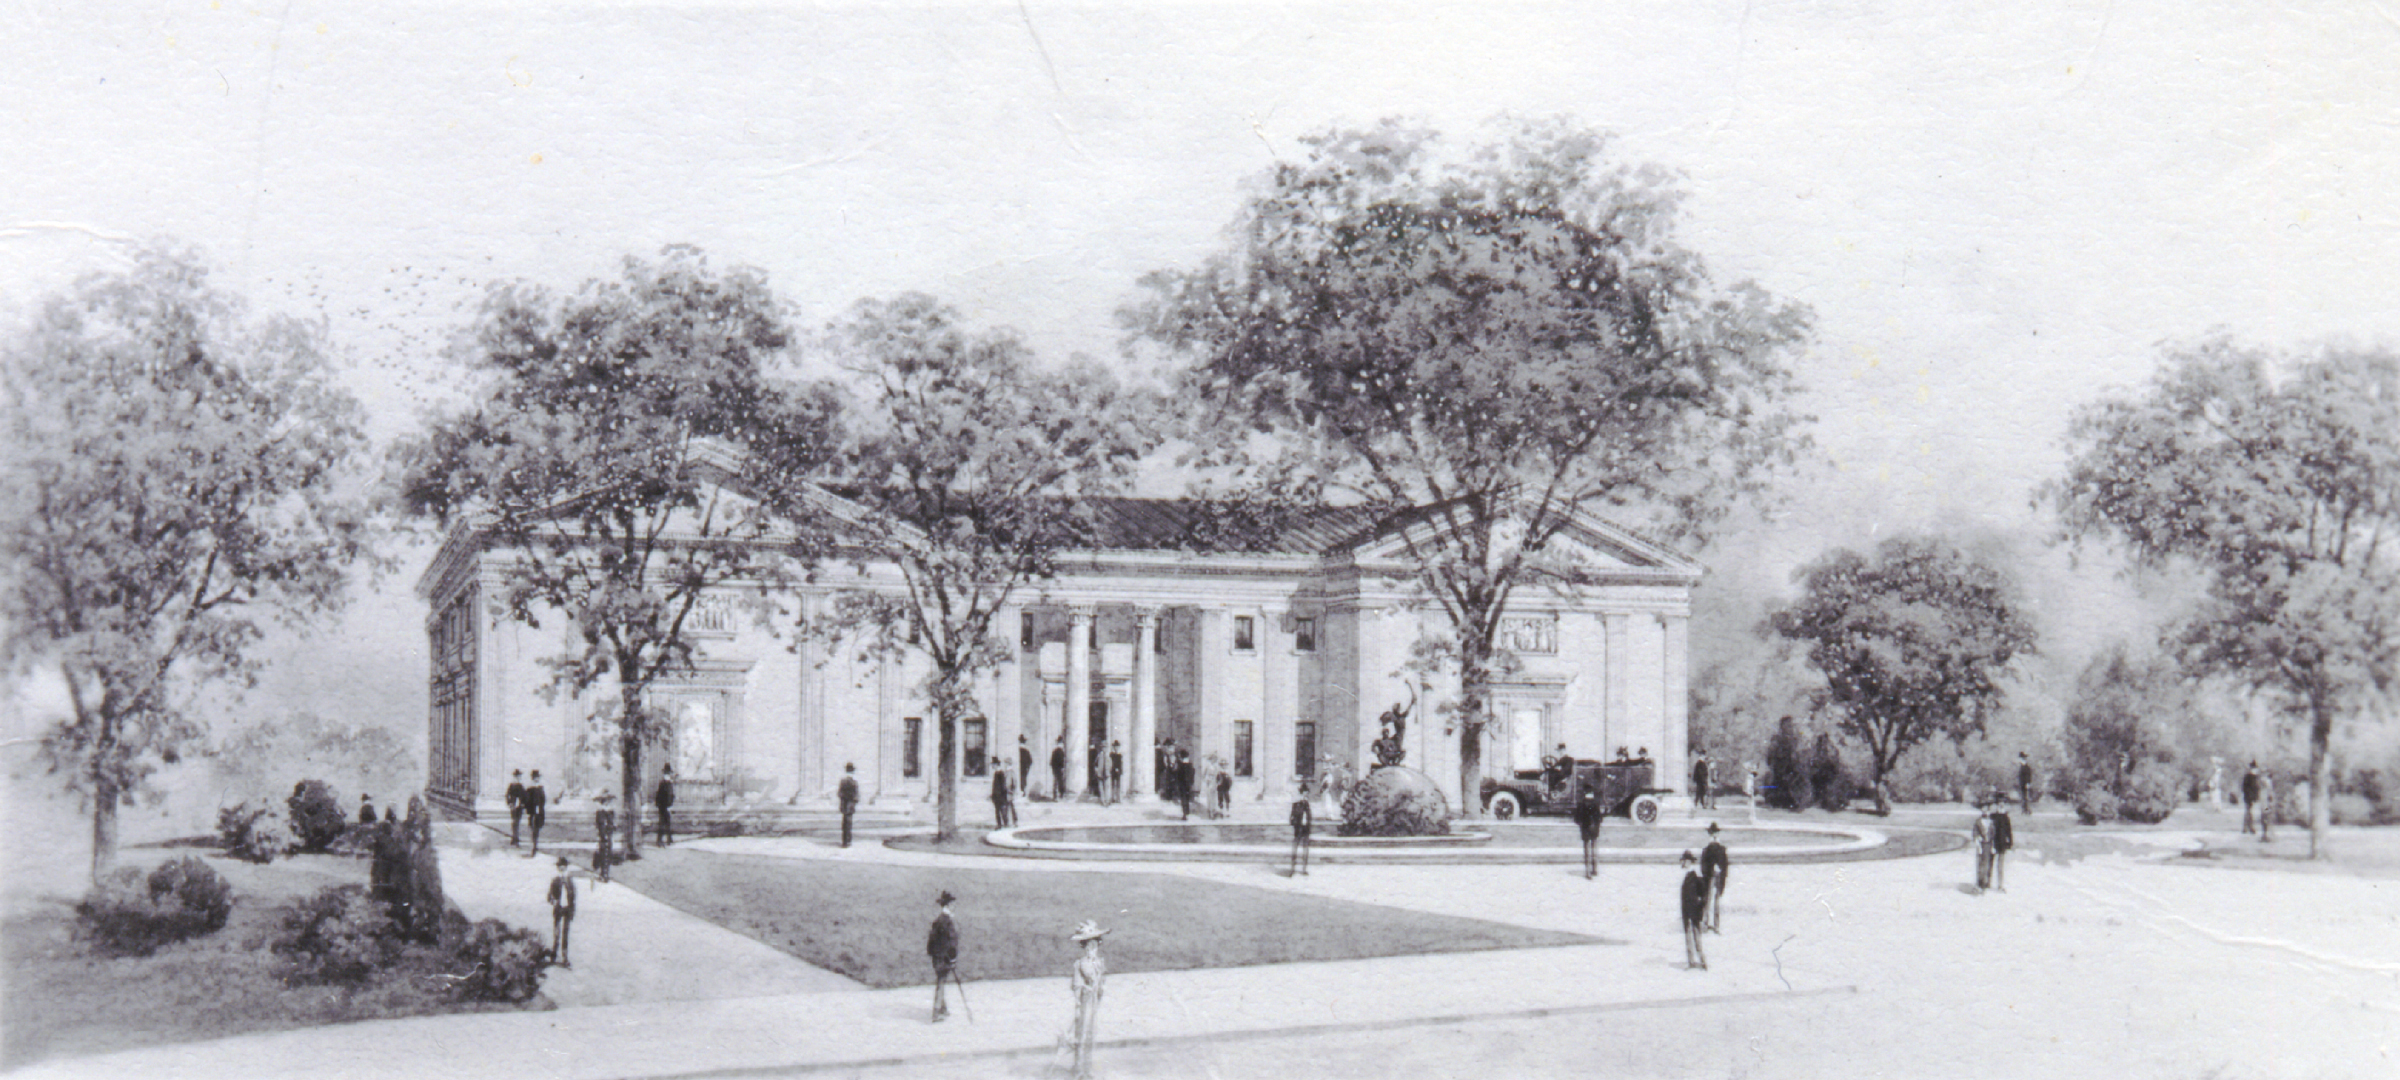 Architect's rendering of MAM from 1914